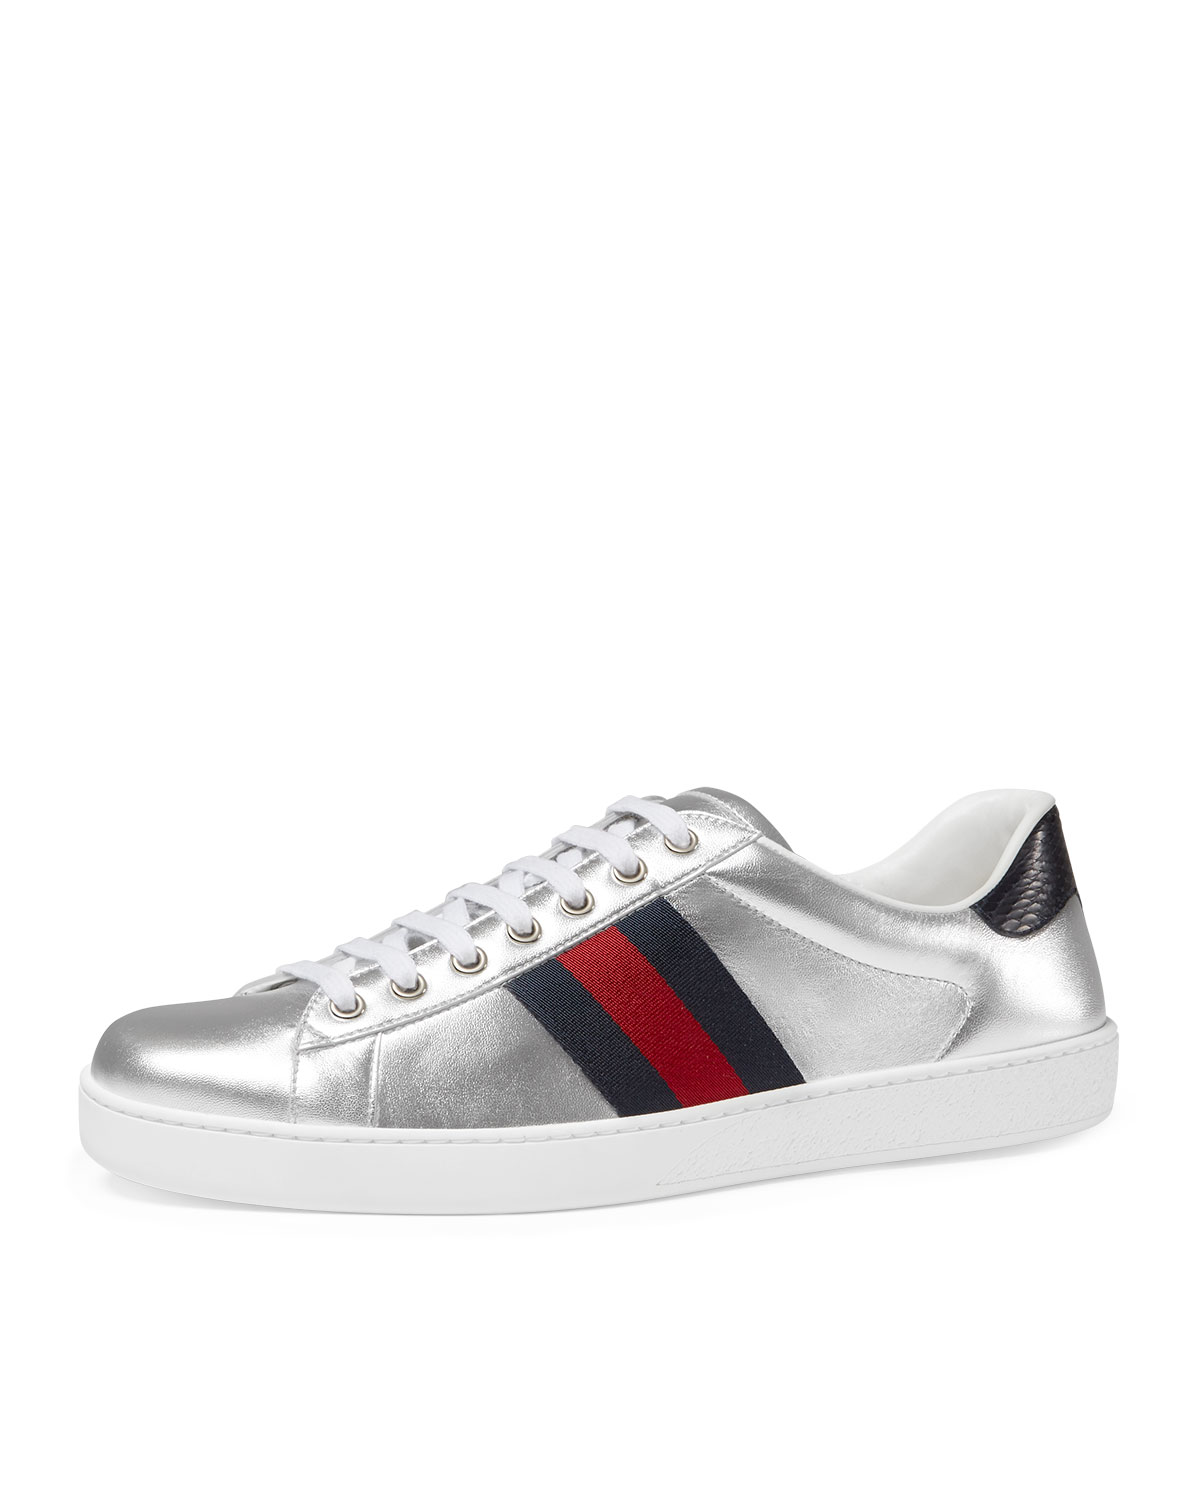 22fec3532ed Gucci New Ace Metallic Leather Low-Top Sneaker